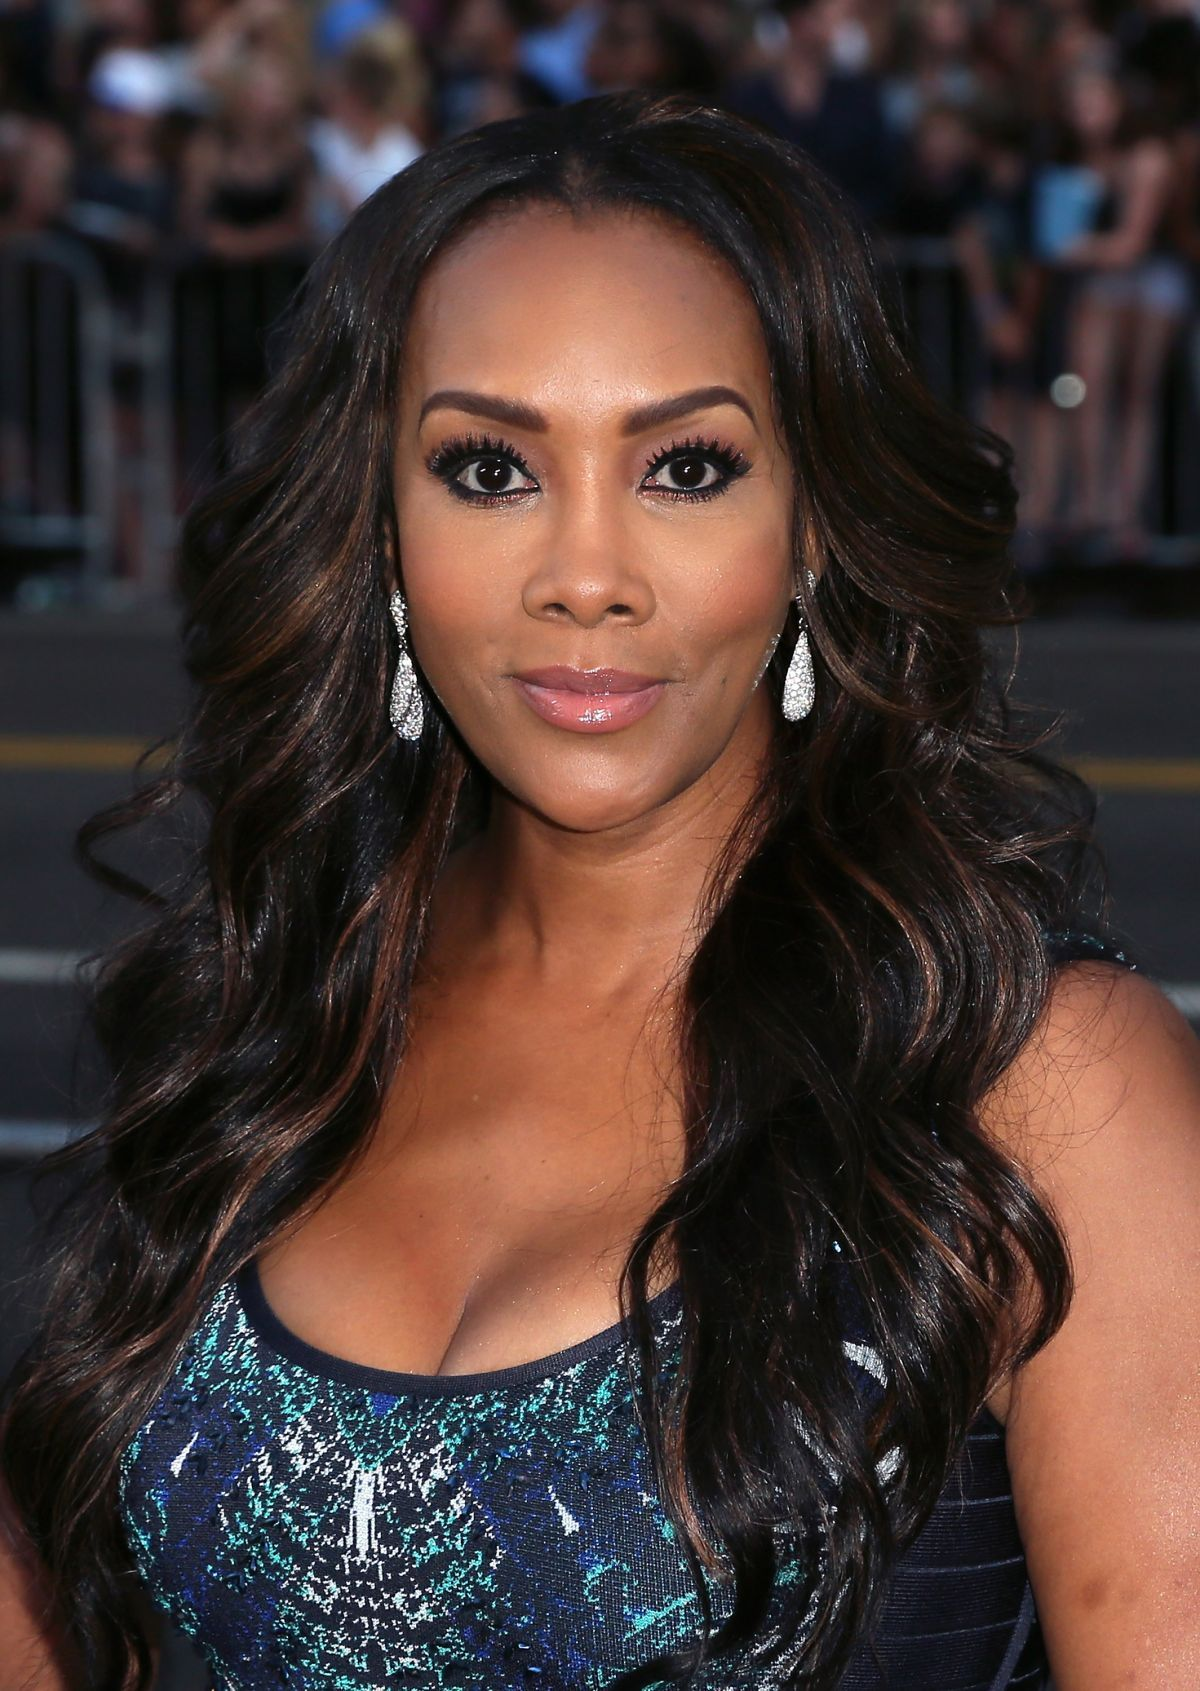 Vivica A. Fox nudes (24 fotos), fotos Sideboobs, Twitter, cleavage 2018